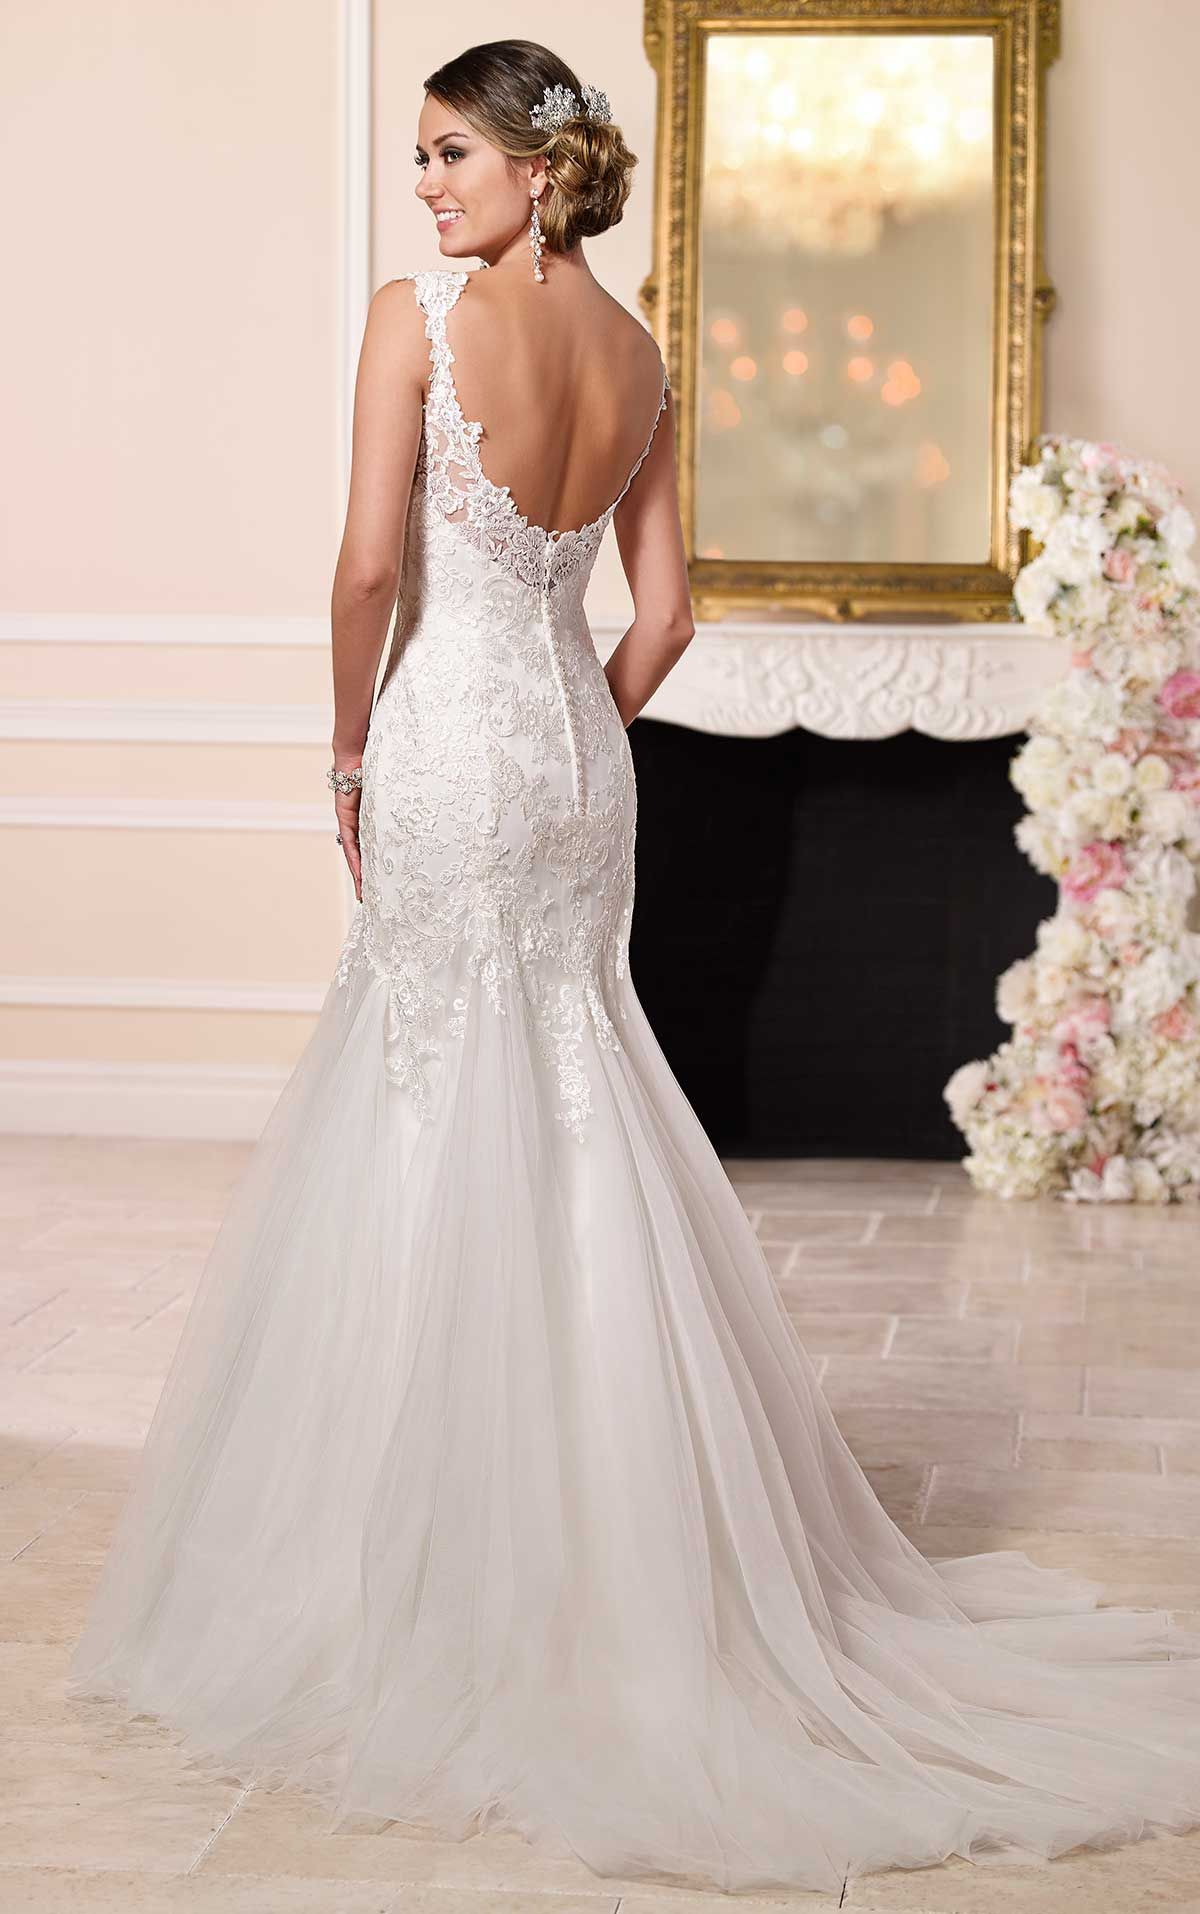 Ethereal Wedding Gown Collections